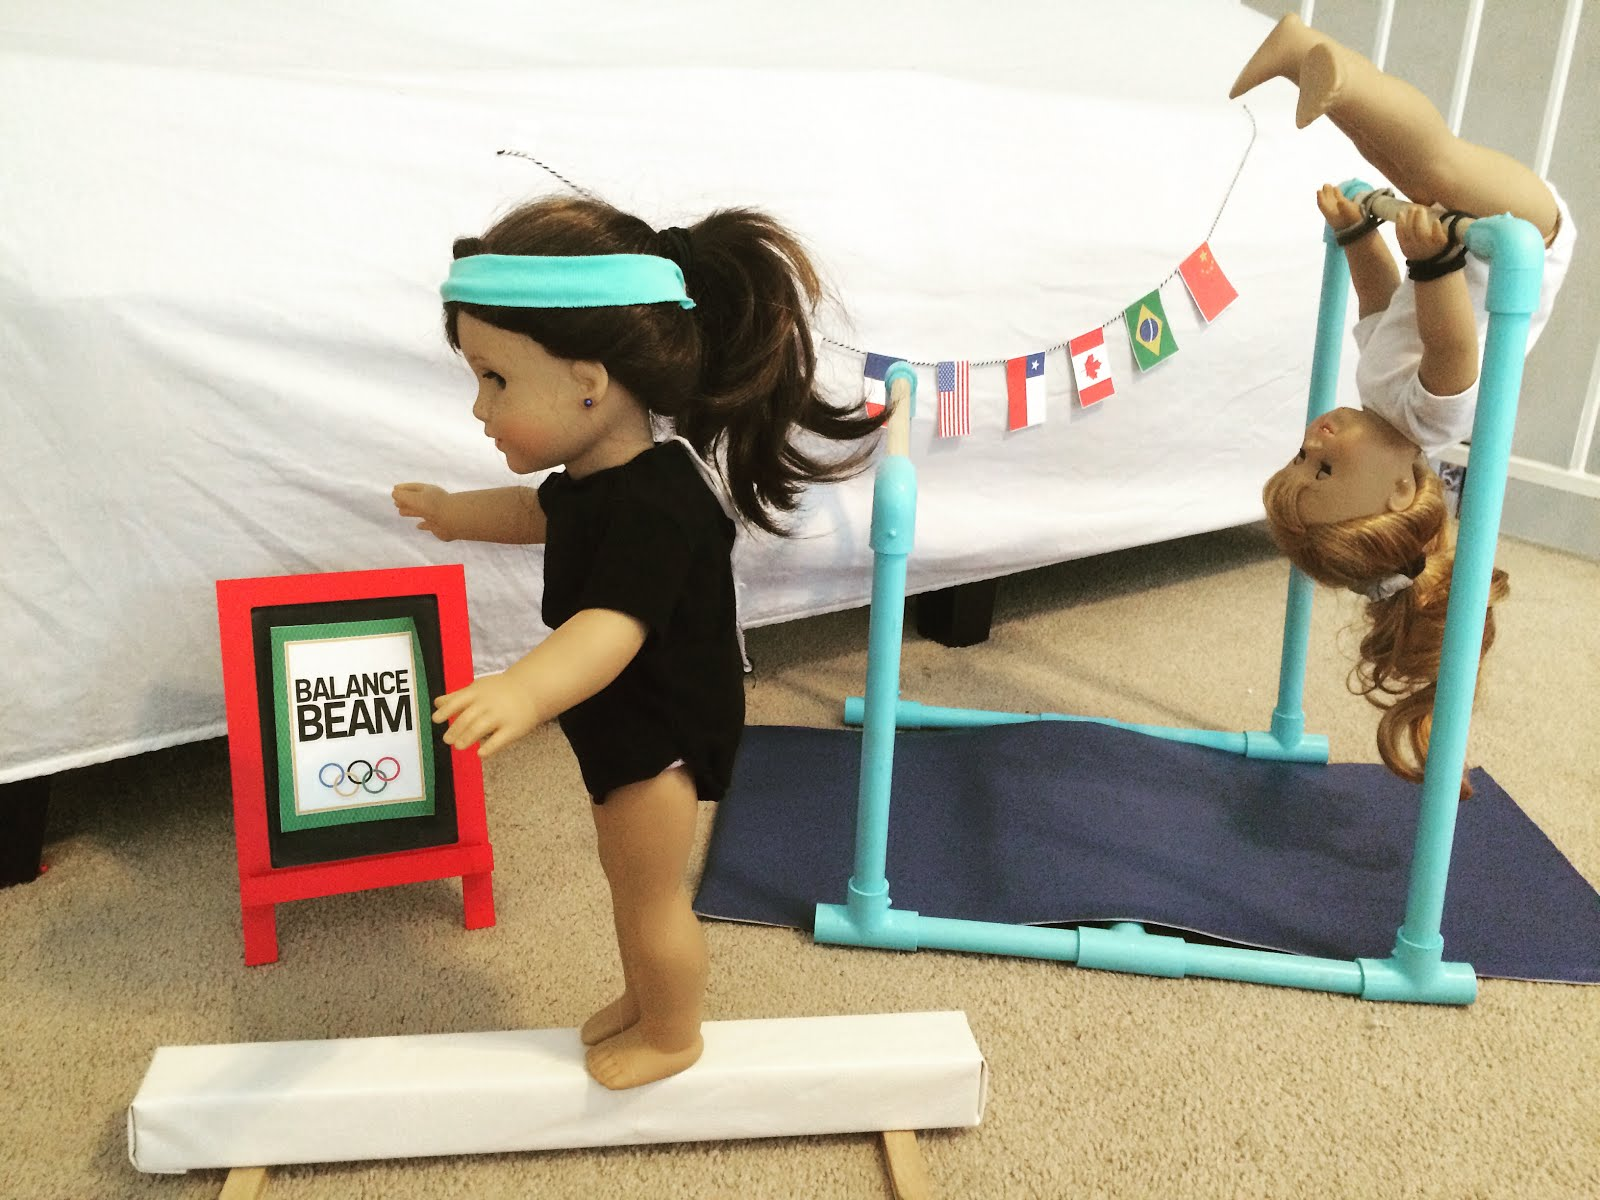 Amazing Stop Motion Doll Routines created at the Olympics Doll Camp!